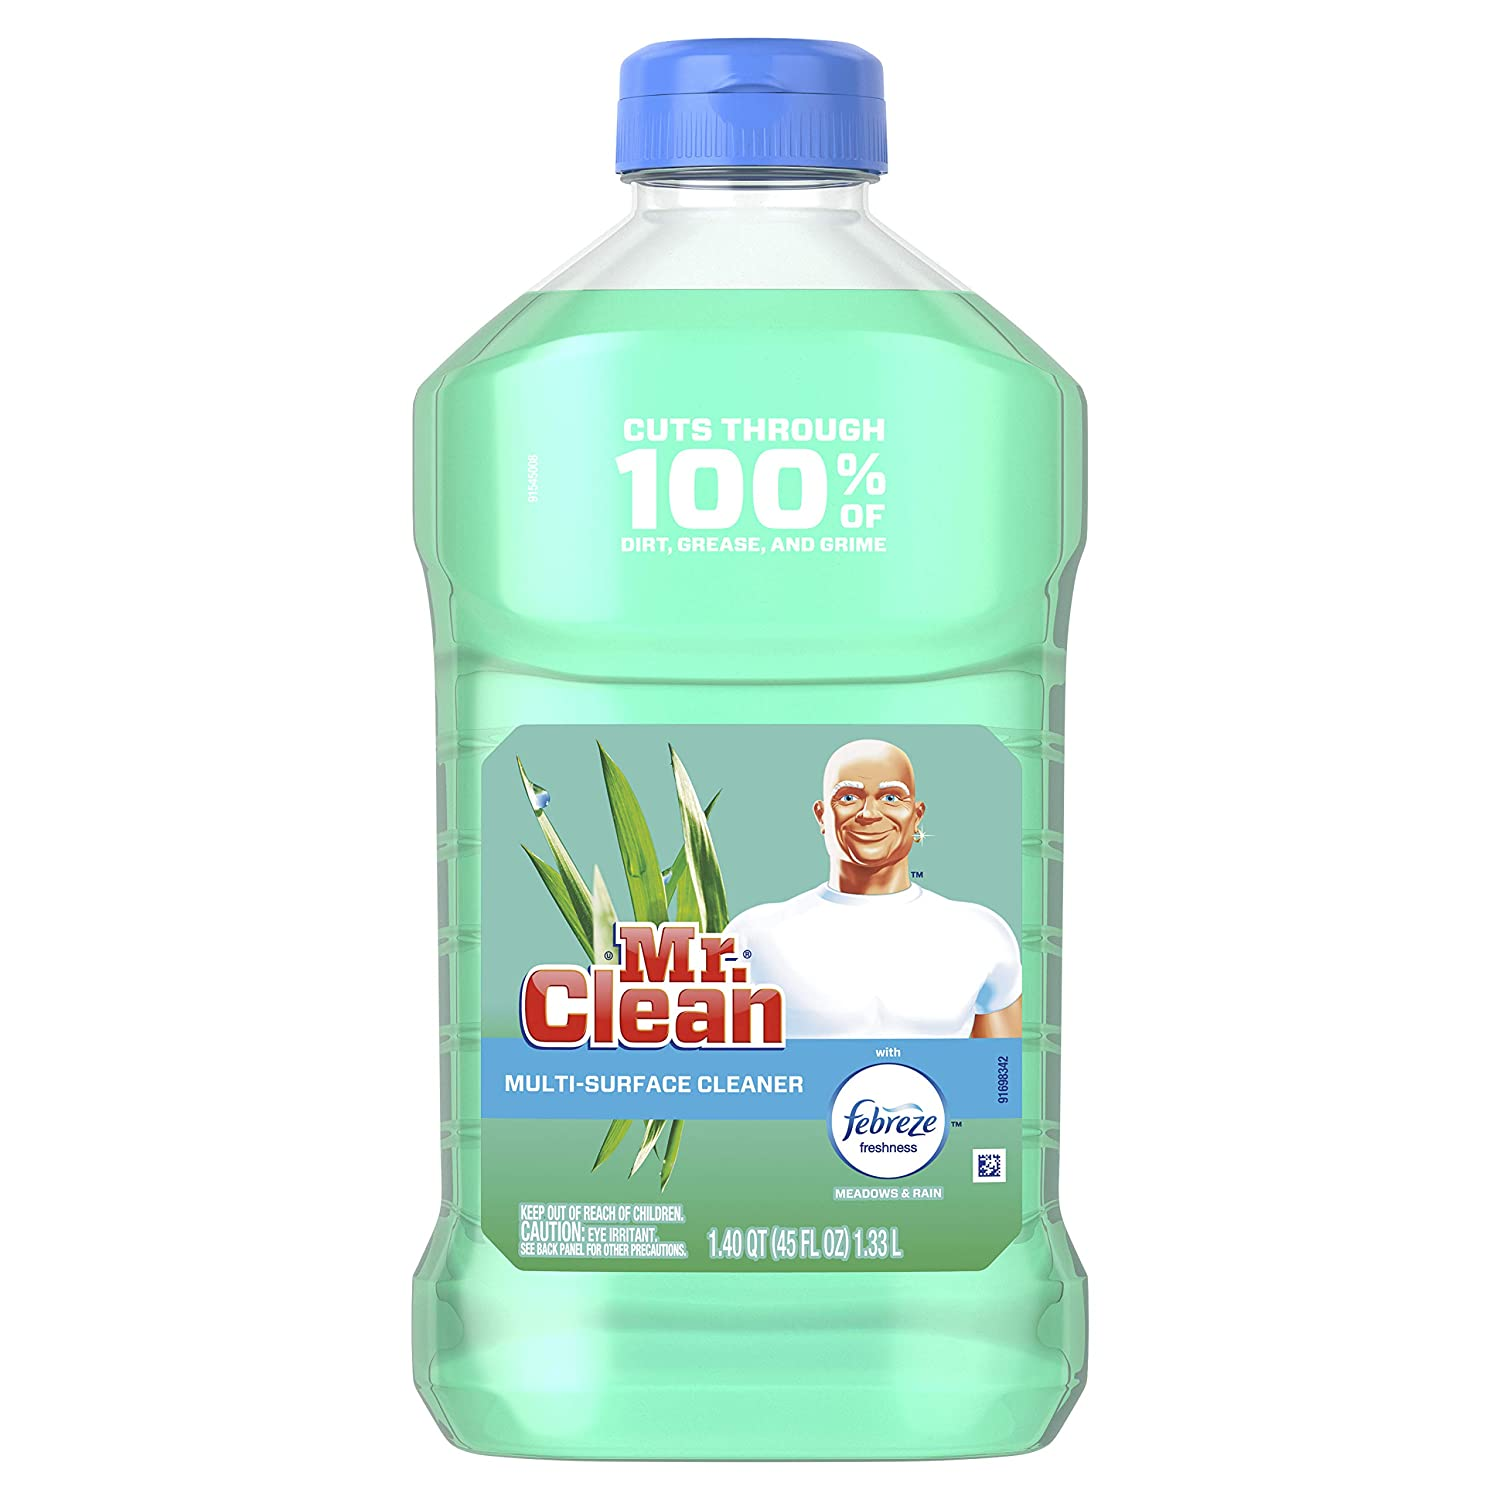 Mr. Clean with Febreze Meadows and Rain Multi-Surface Cleaner, 45 fl oz (Pack of 6)